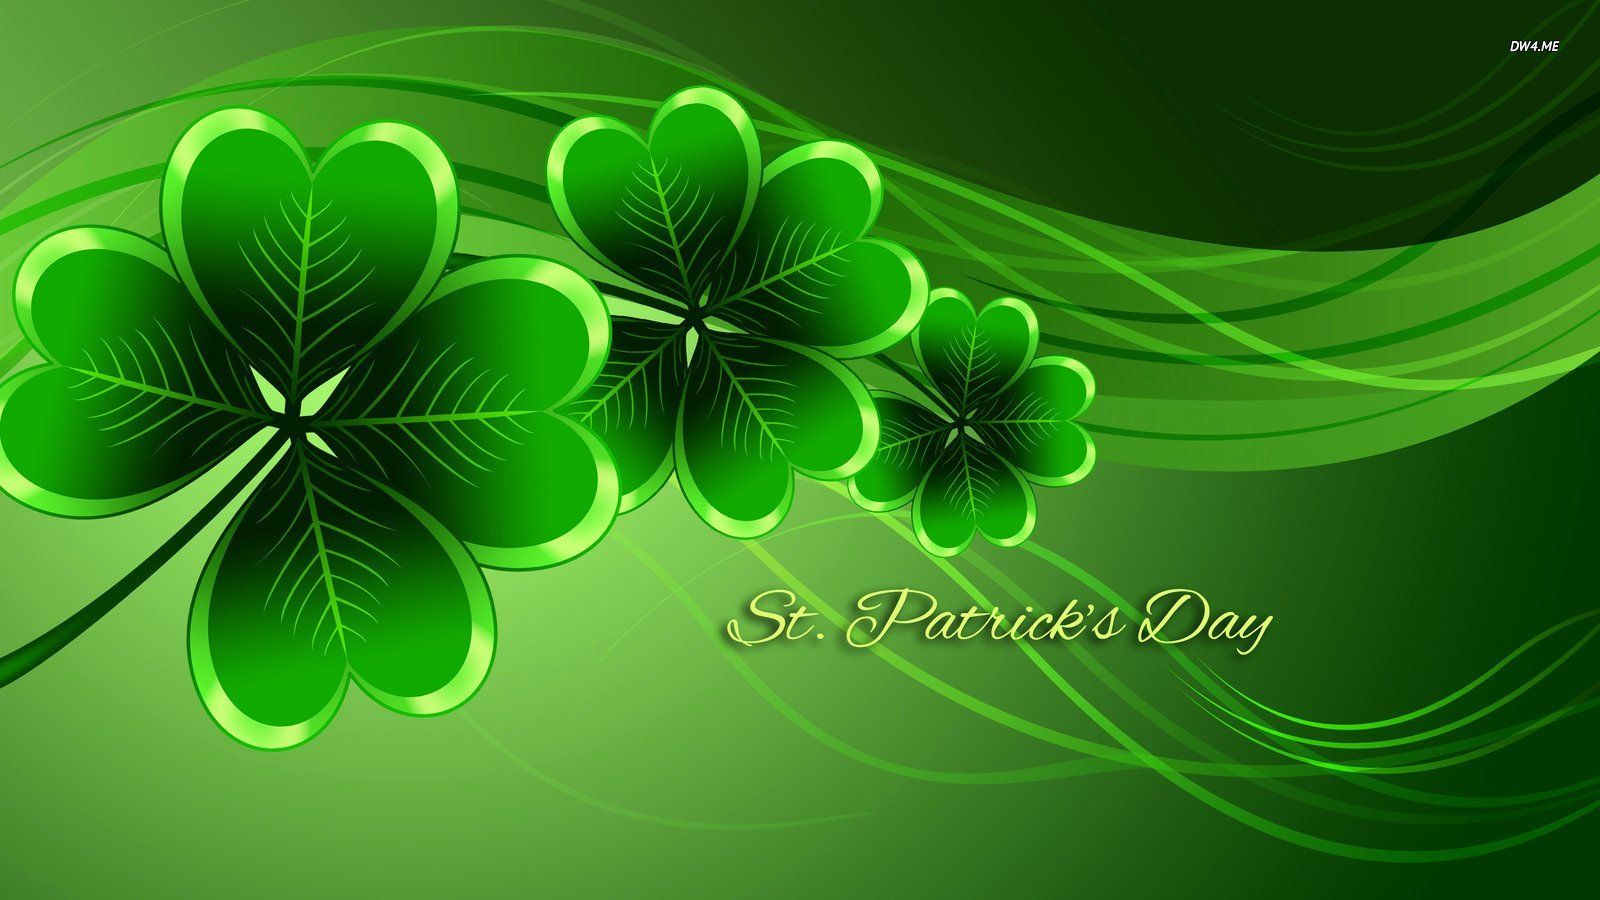 St Patrick Day Greetings In 2020 St Patricks Day Pictures